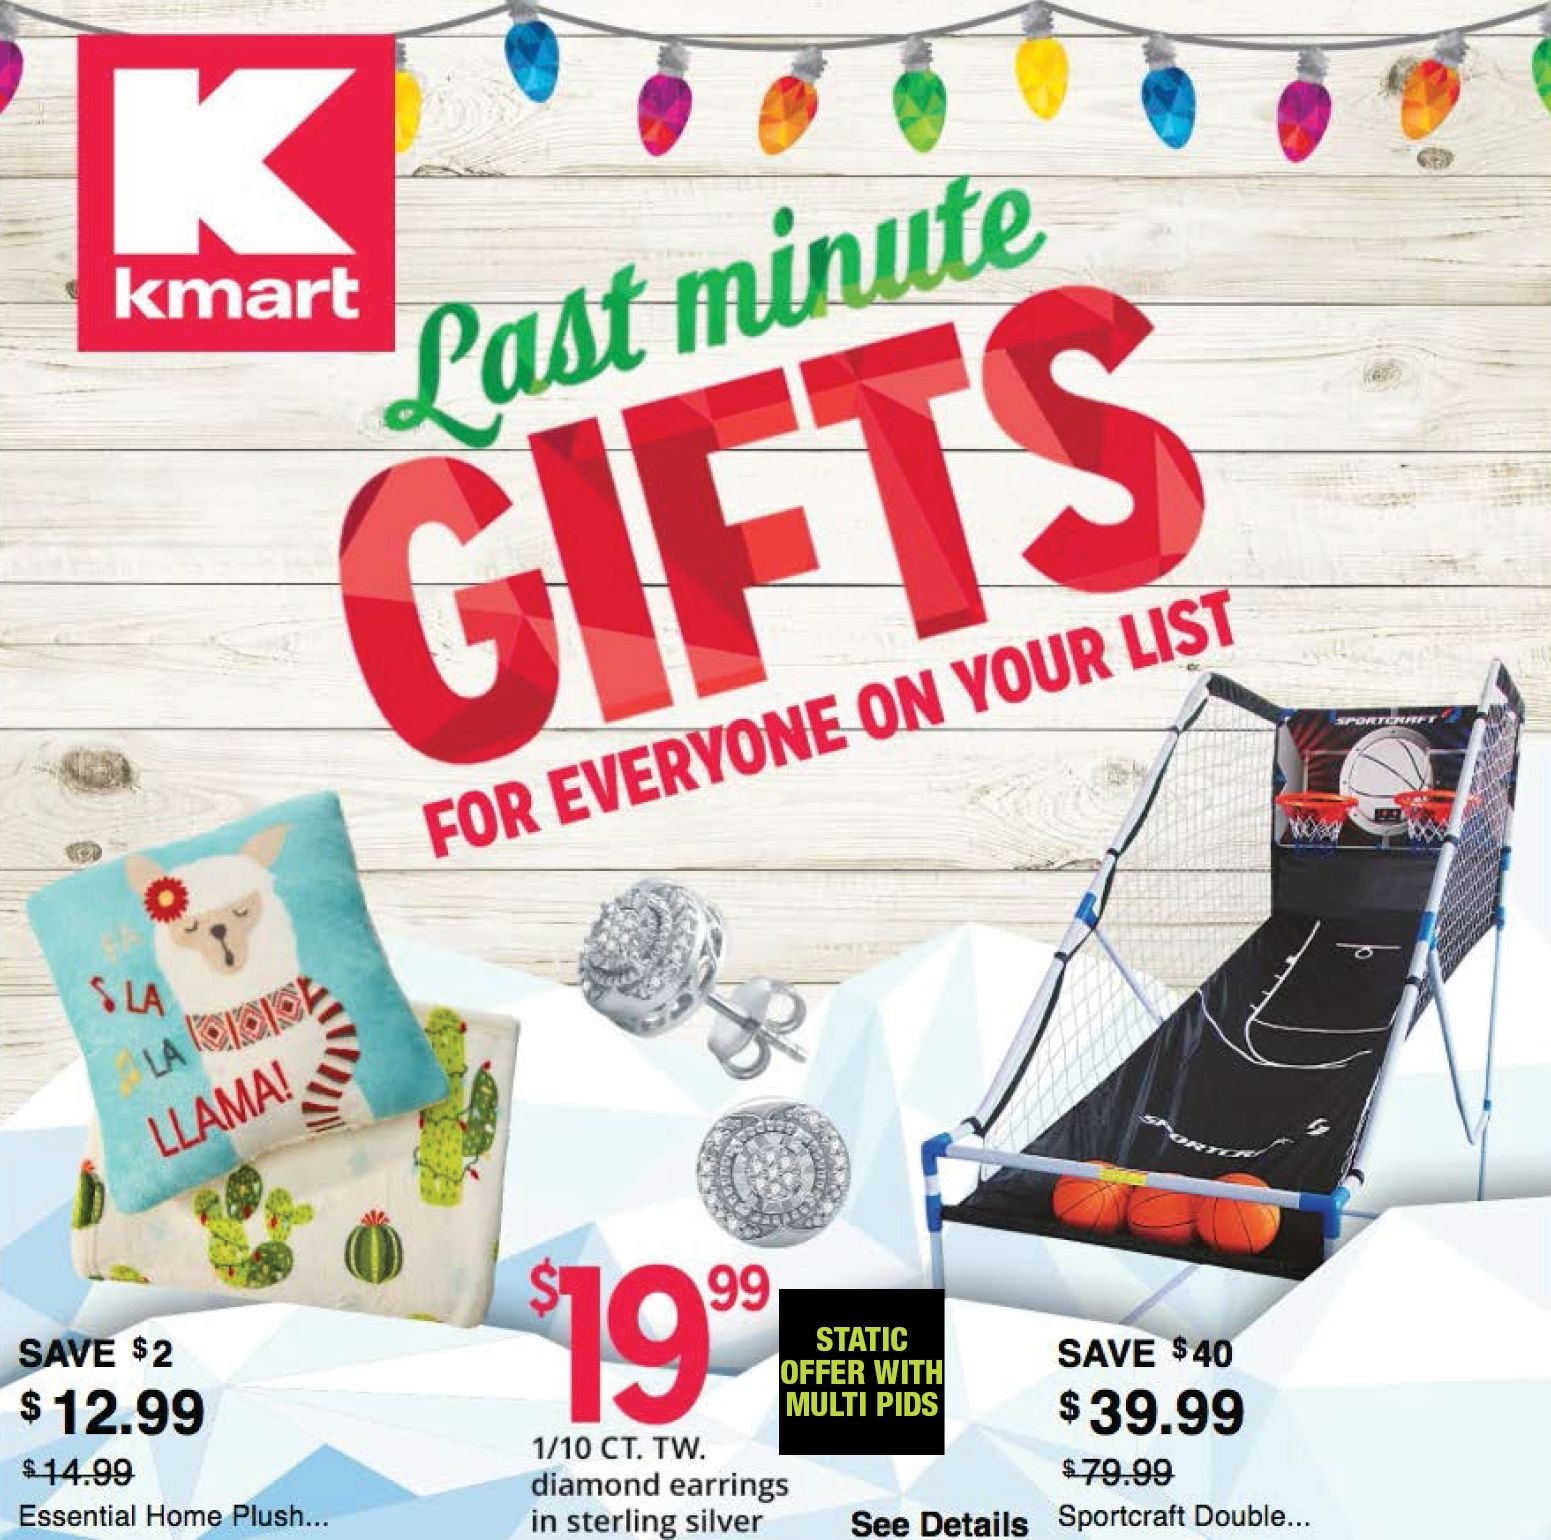 Kmart Flyer - 12.16.2018 - 12.24.2018 - Sales products - earring, earrings. Page 1.